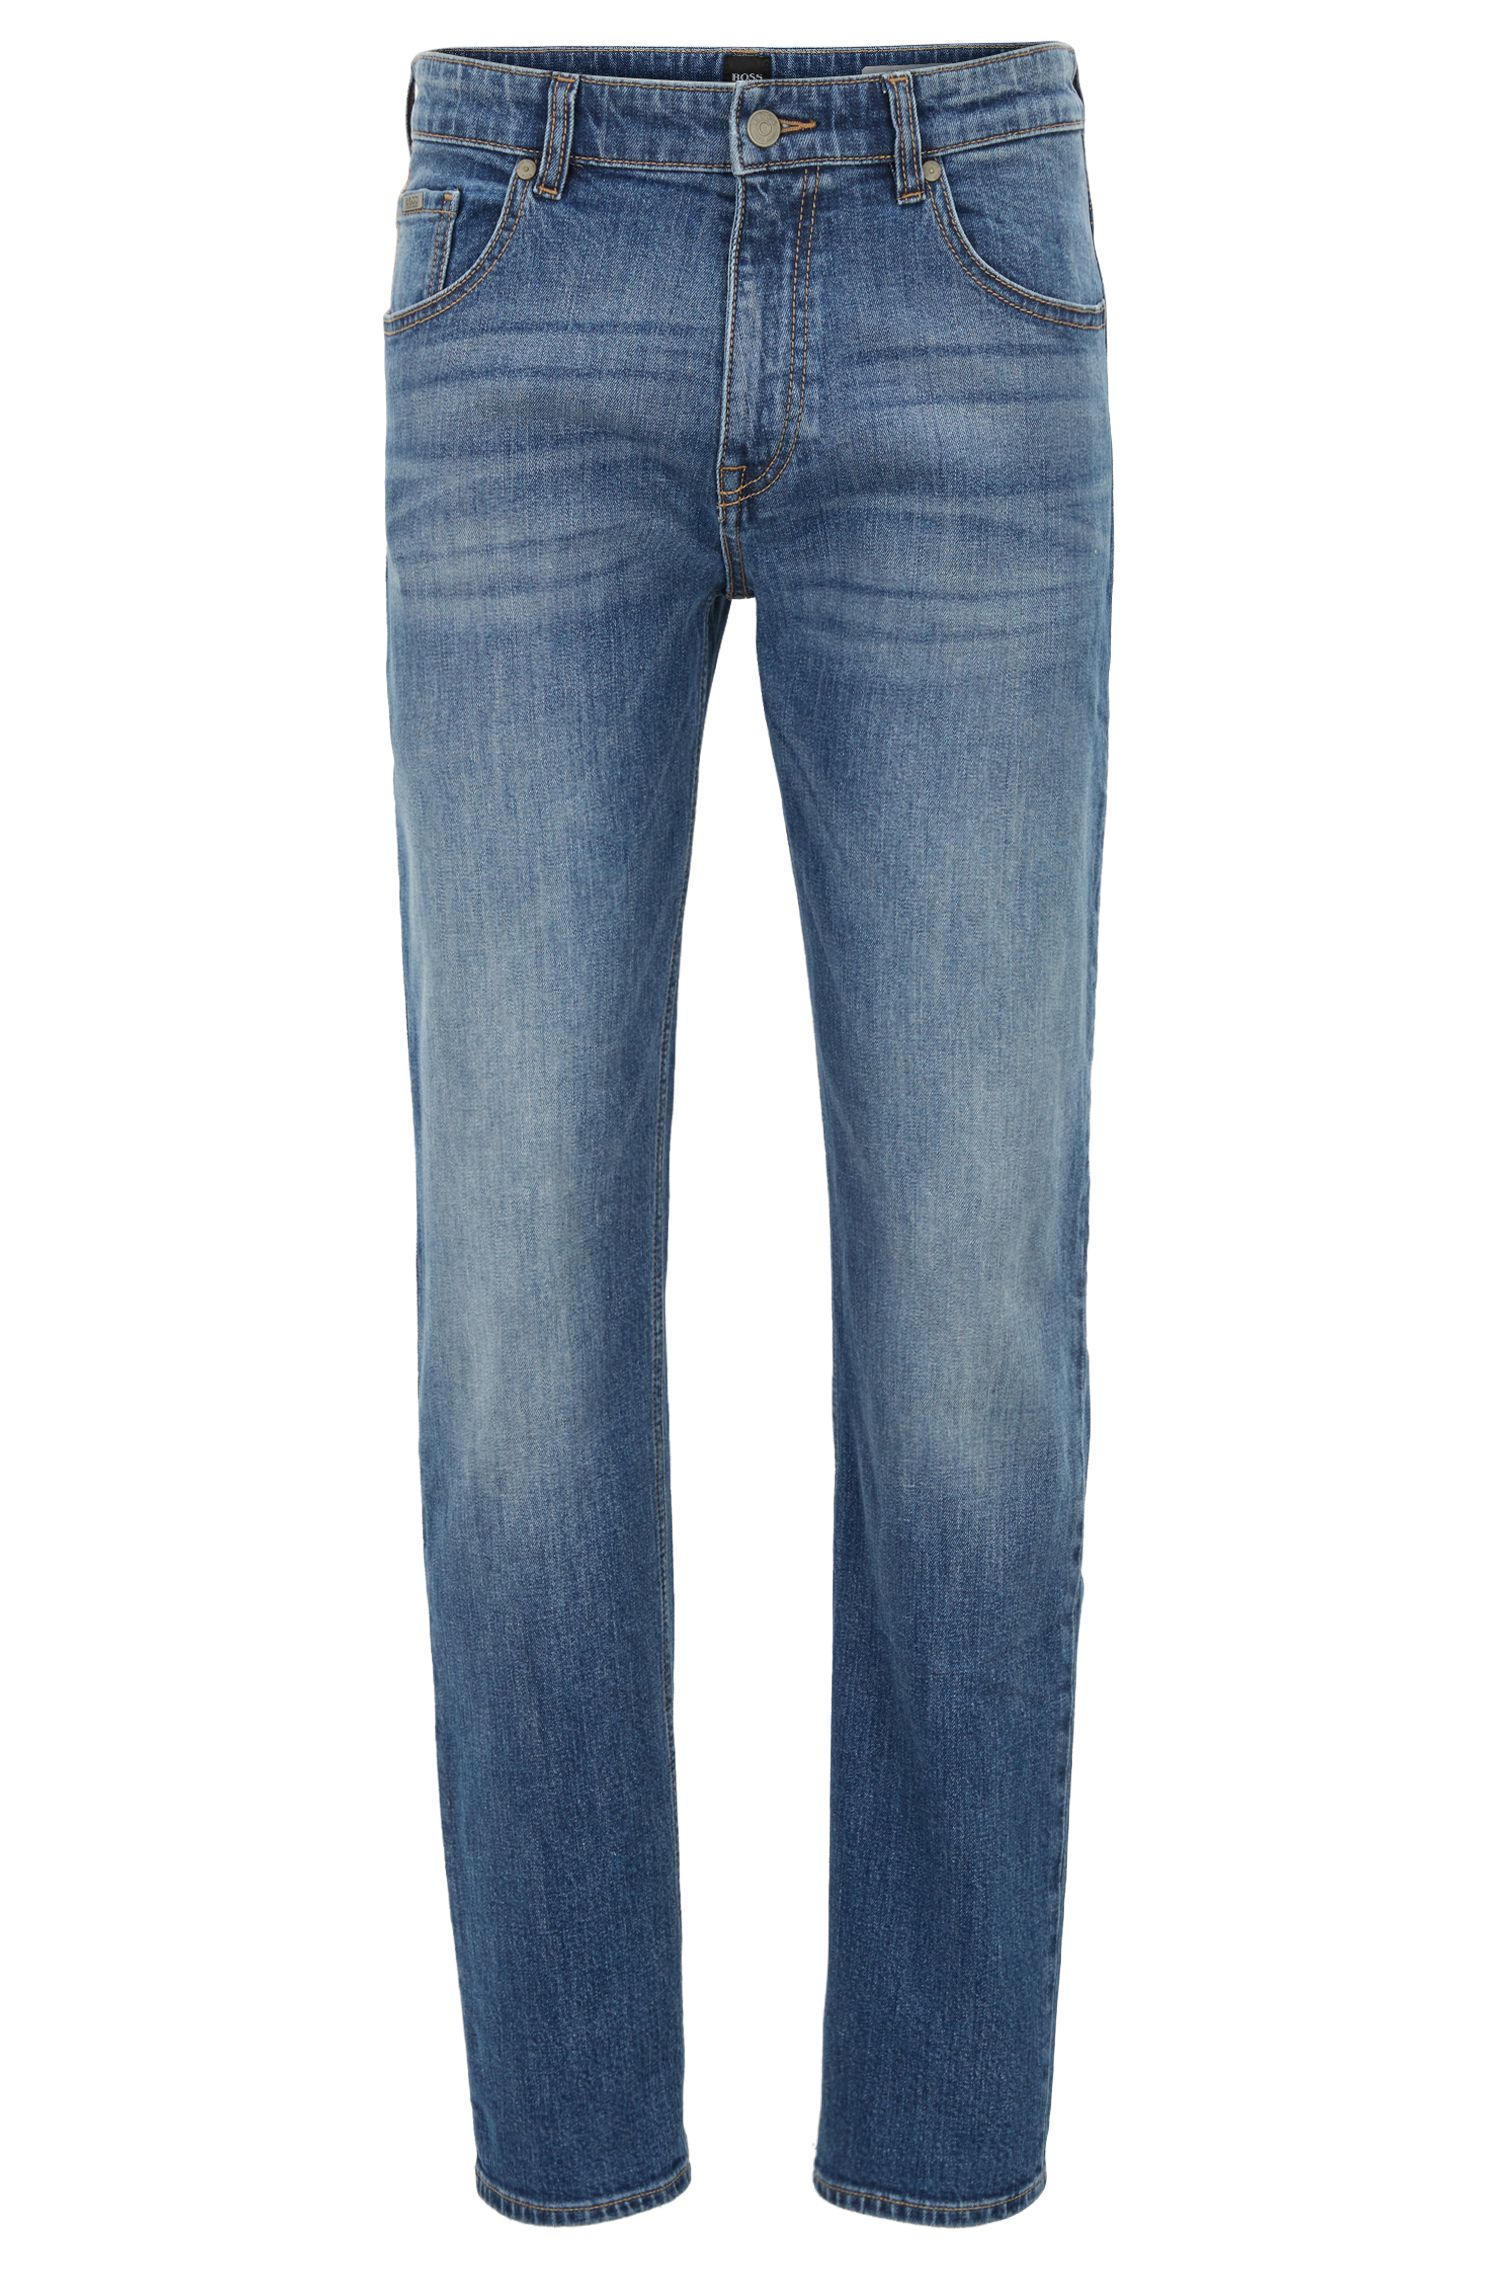 Jean Relaxed Fit en denim stretch délavé bleu clair